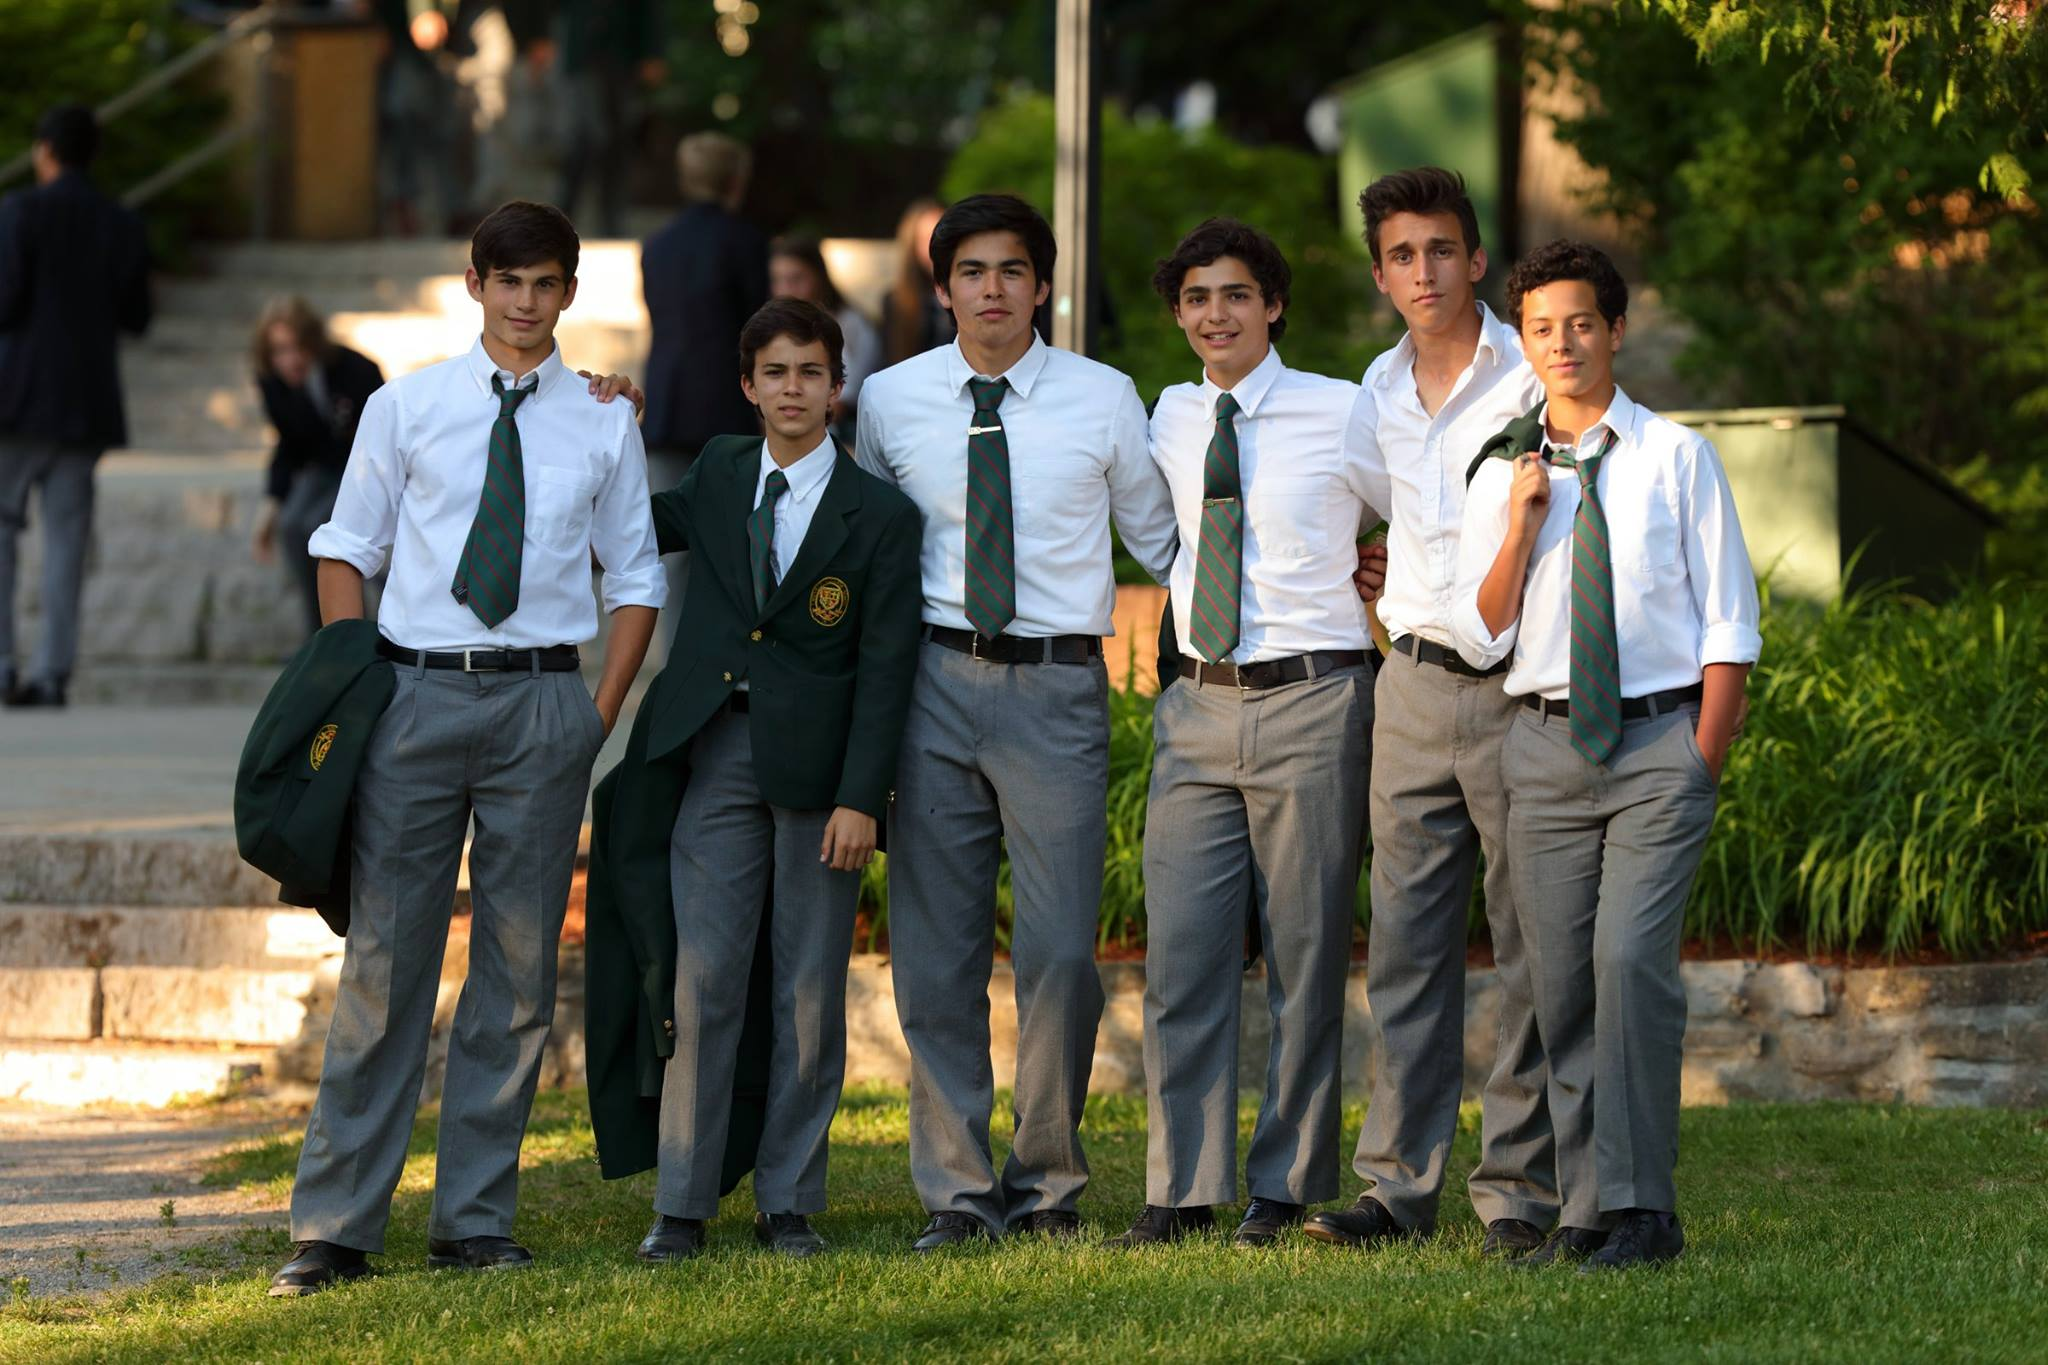 The Answers to 5 Popular Questions About Attending Boarding School